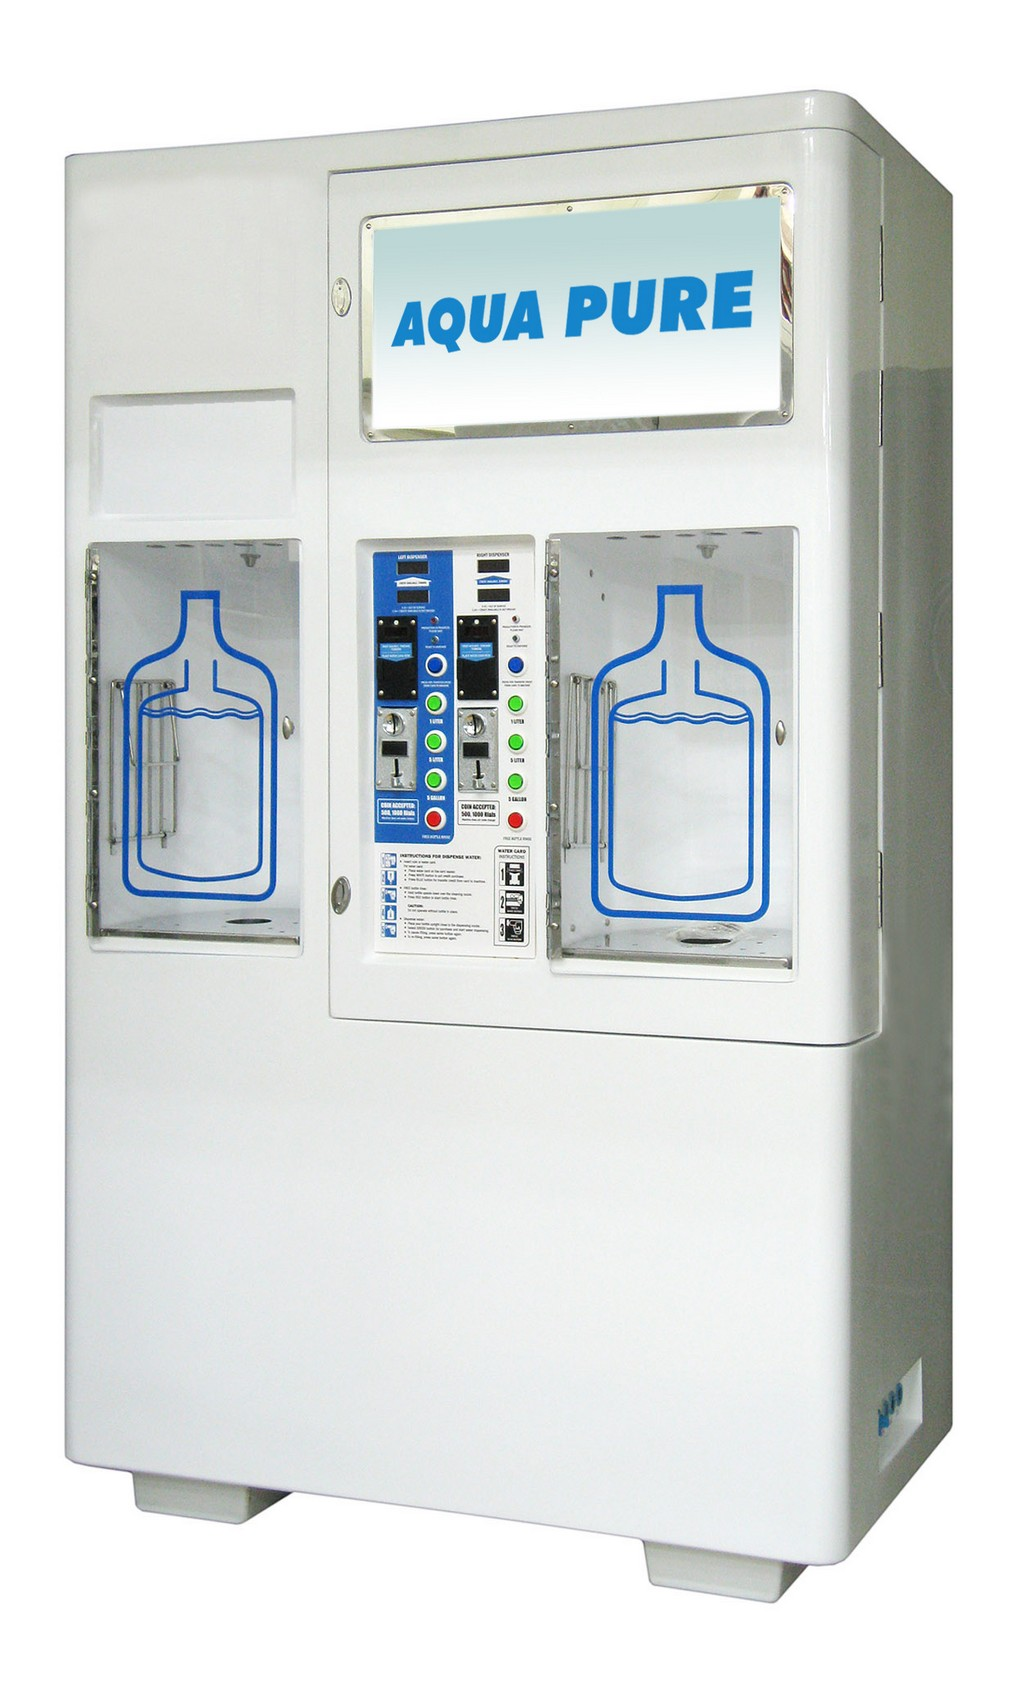 vending machine uk, tea vending machine, vending machine in schools